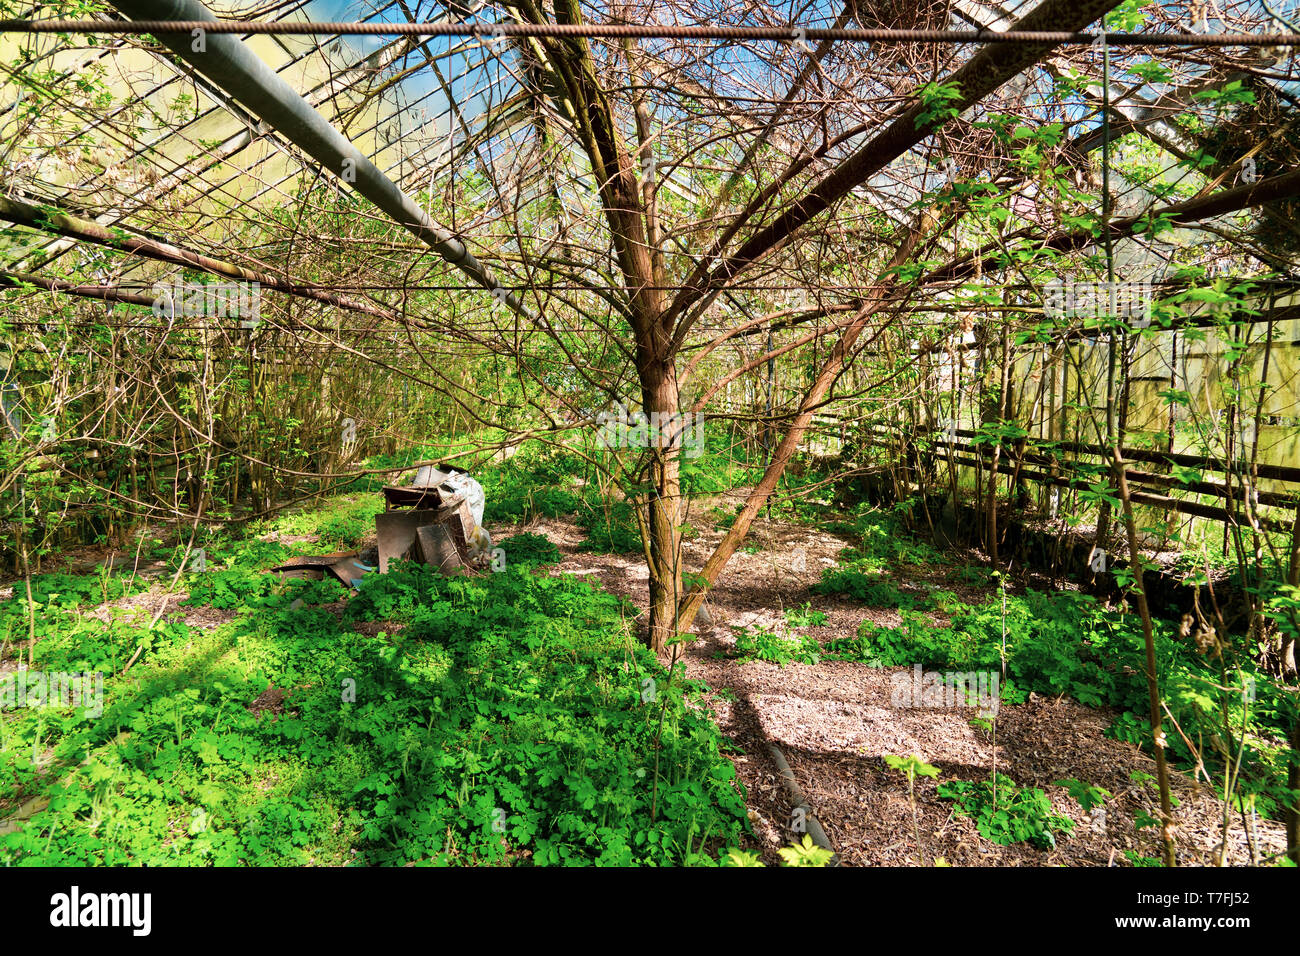 Old abandoned greenhouse. Post-apocalyptic climate. Greenhouse overgrown with bushes and spring thickets - Stock Image